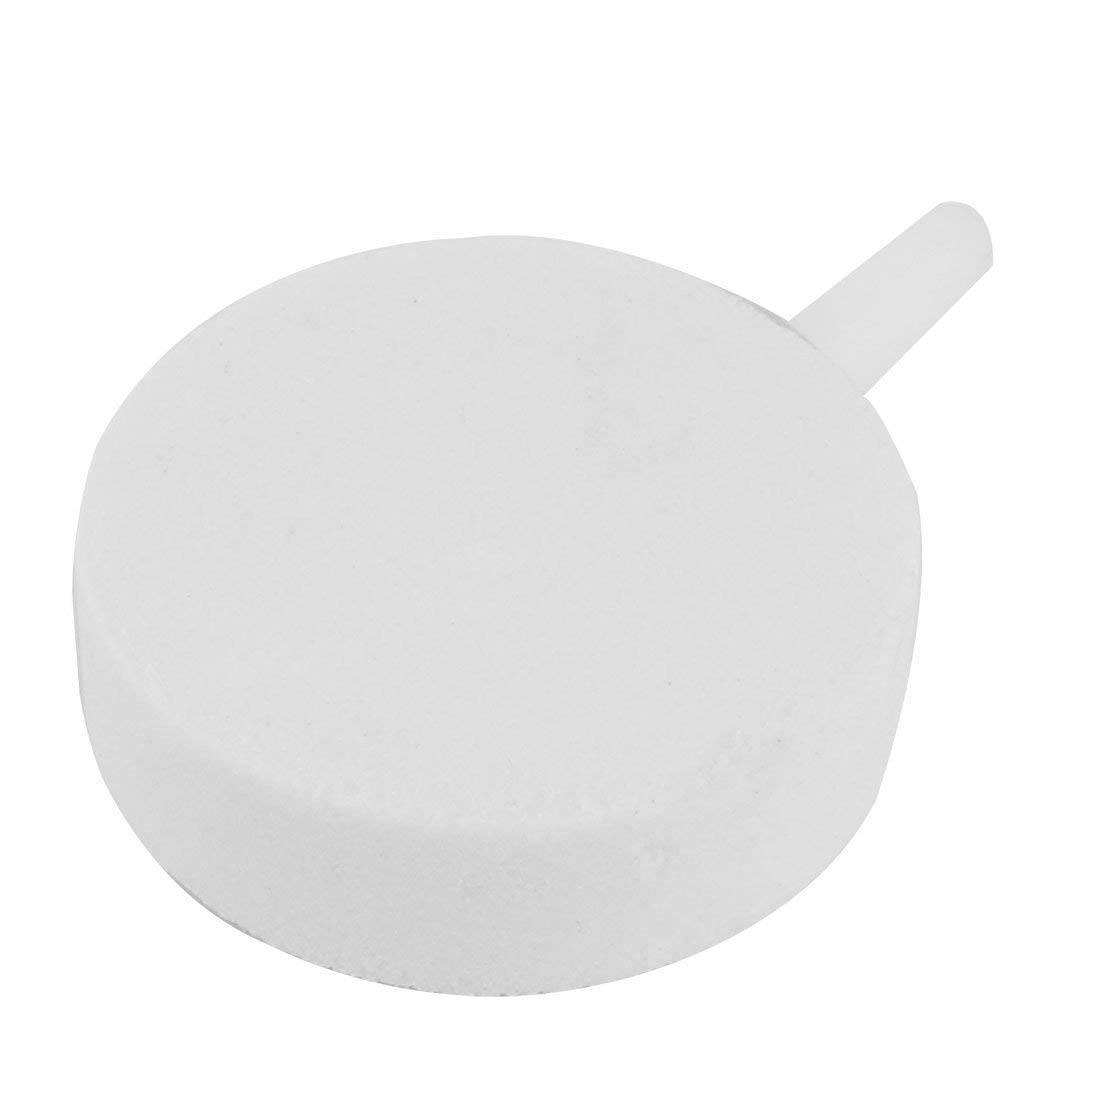 1Pc Mineral Aquarium Tank Bubble Release Airstone Air Stone 3mm Inlet Hole White